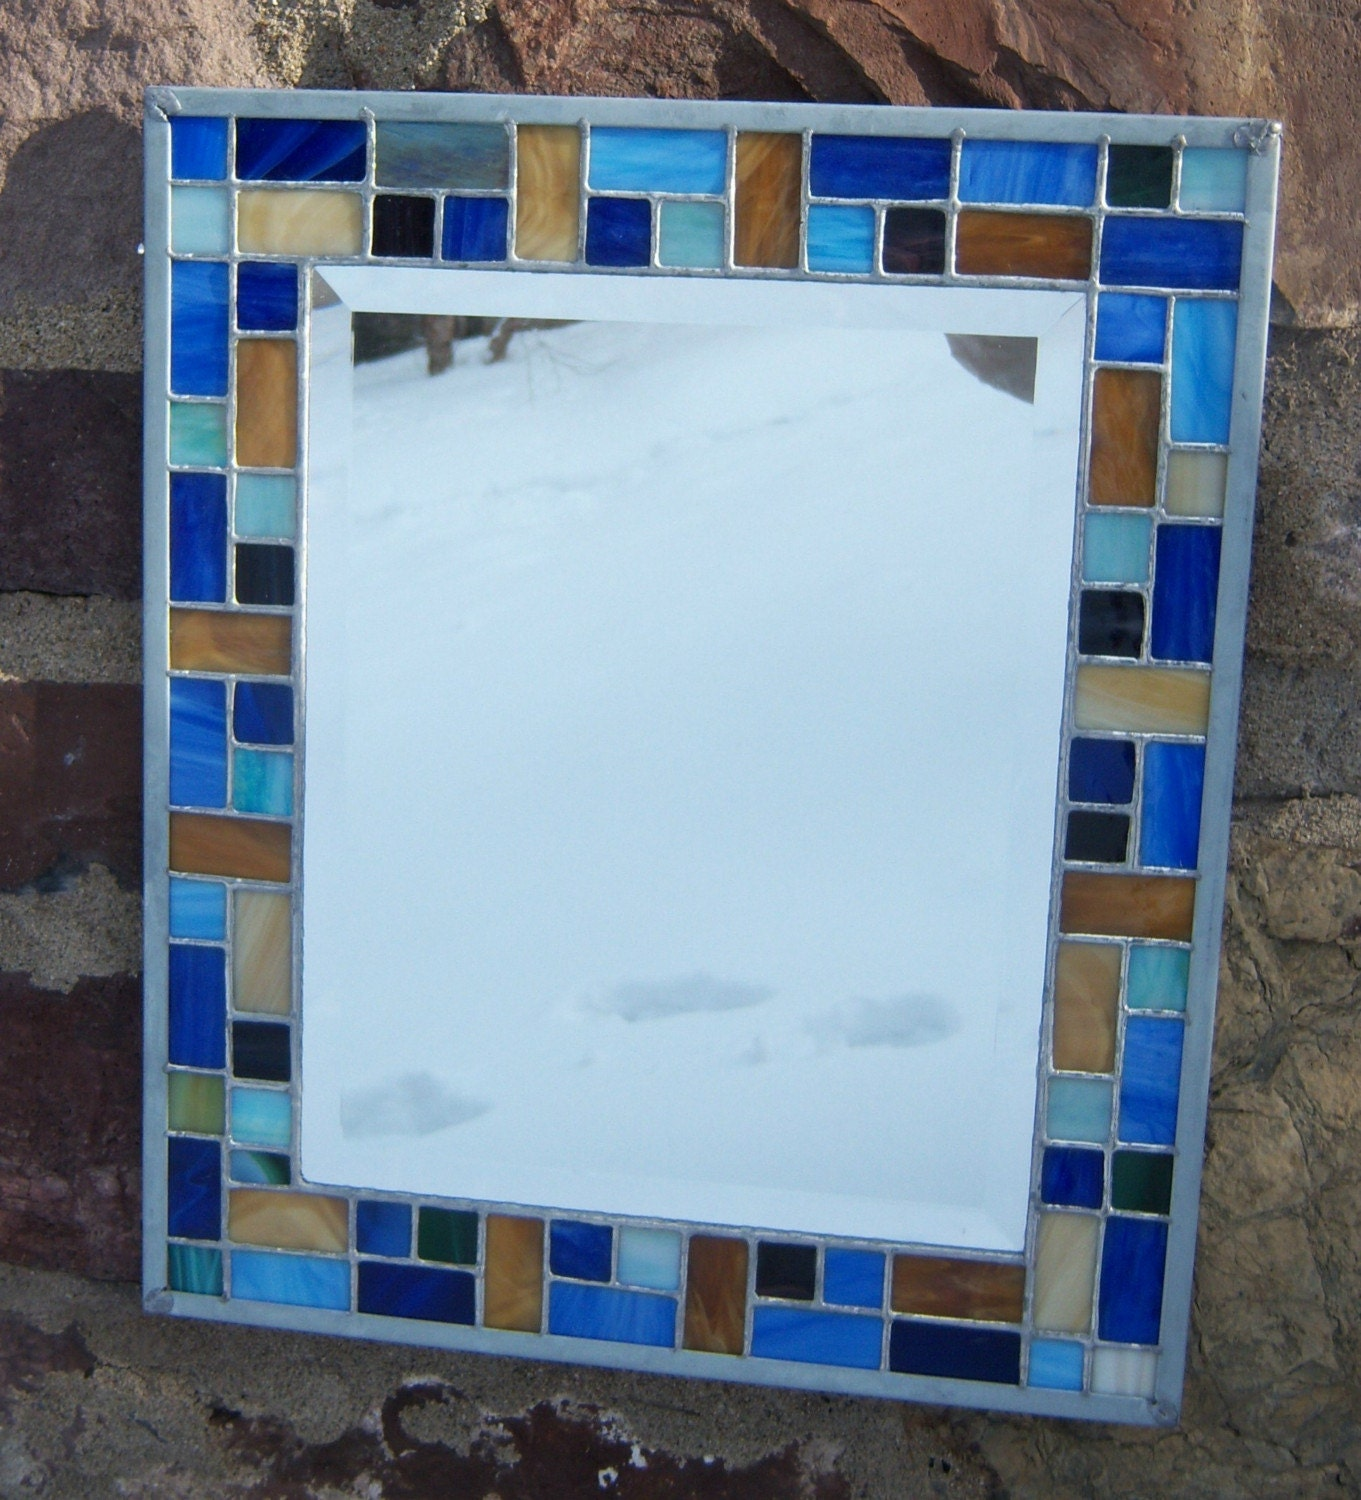 Mosaic style stained glass beveled mirror